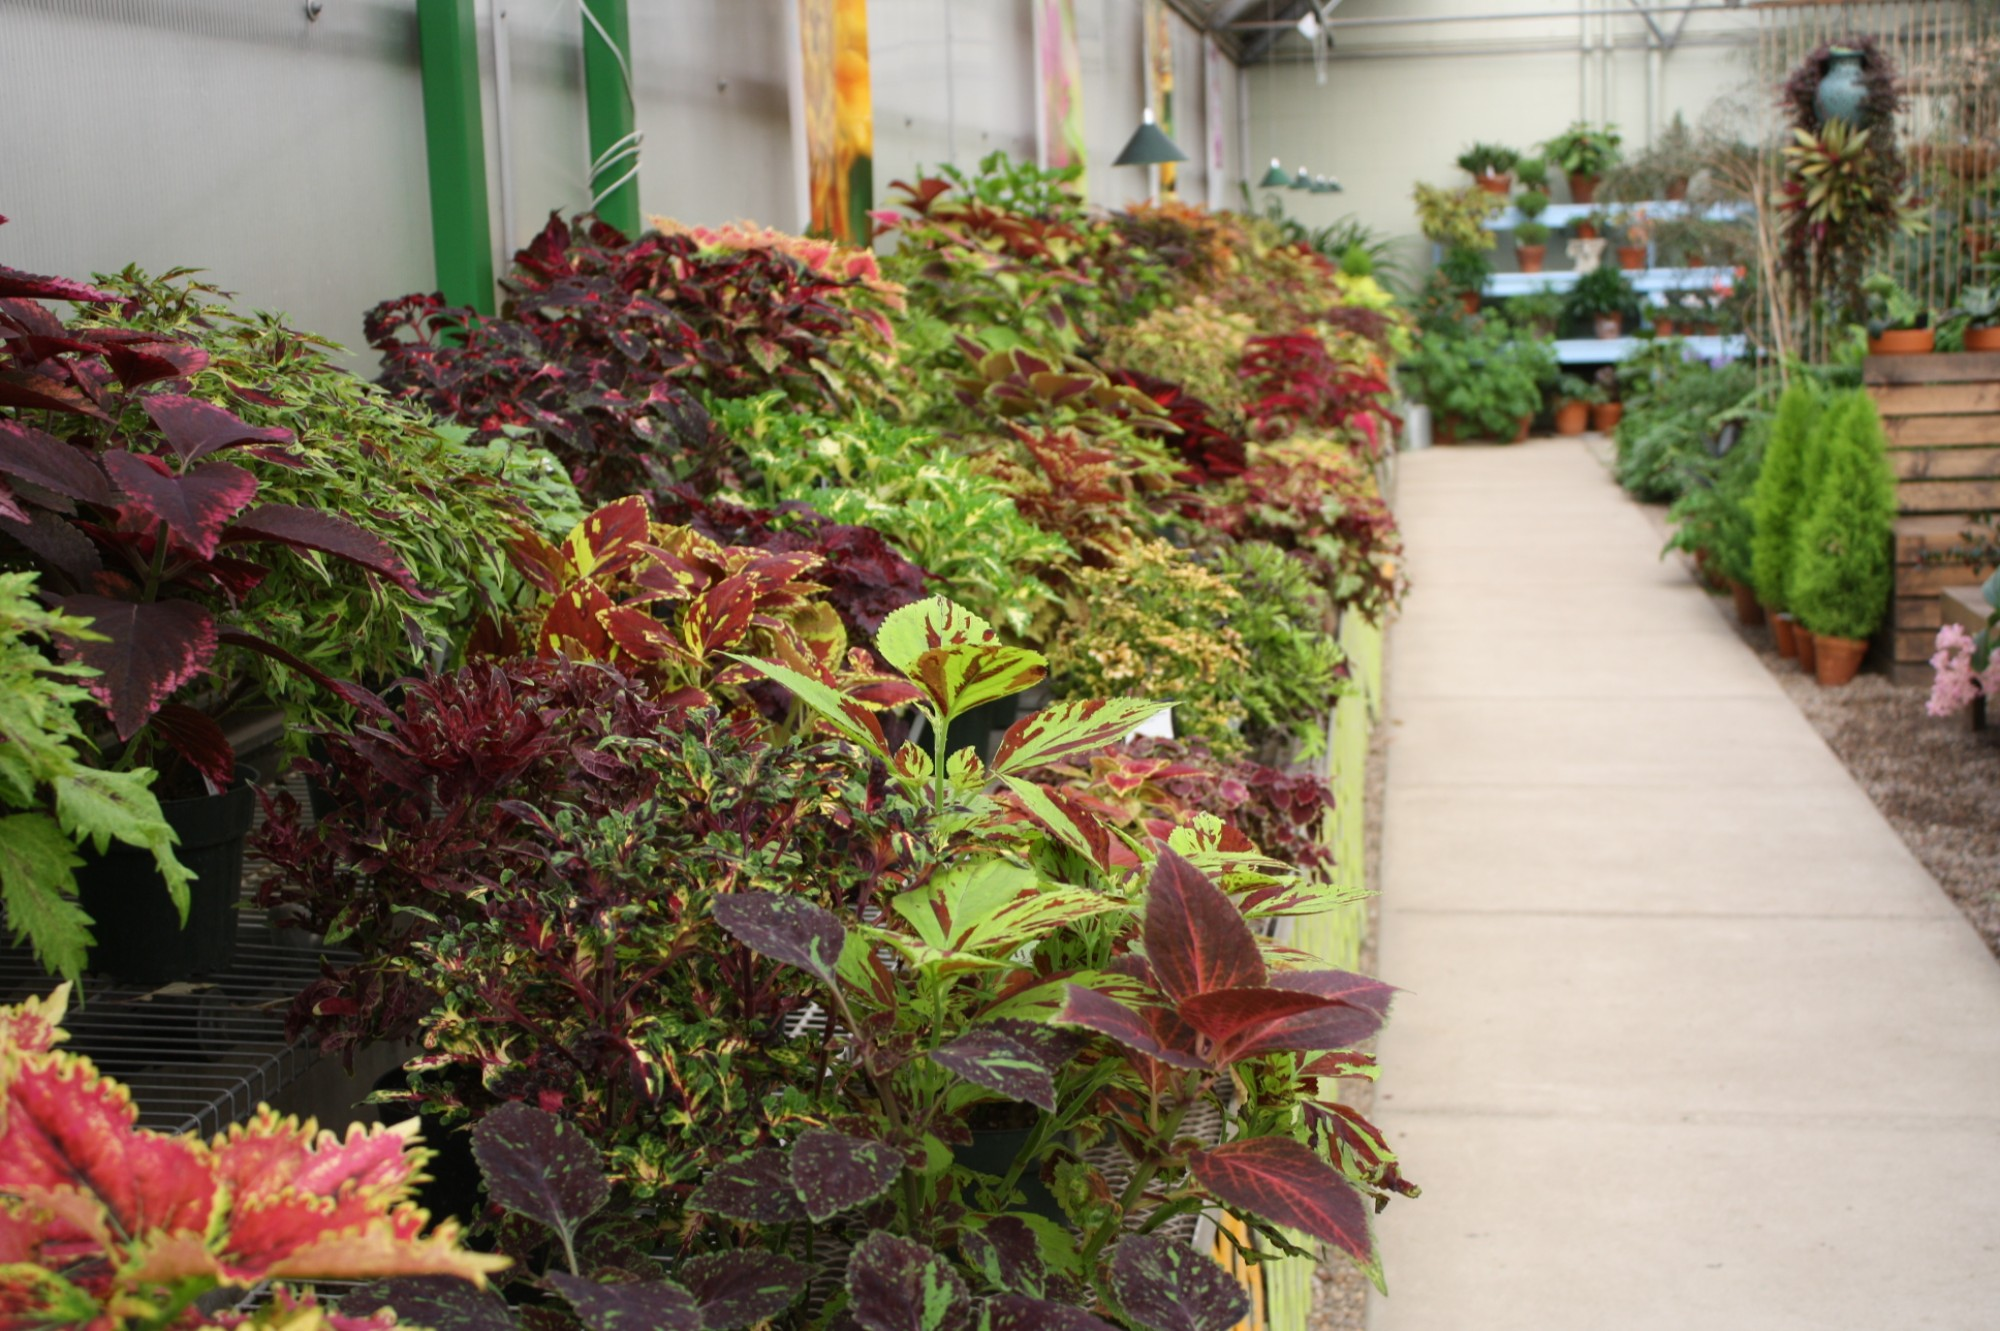 The coleus collection on display in the Gardeners Show House. Photo by Leslie Hunter.